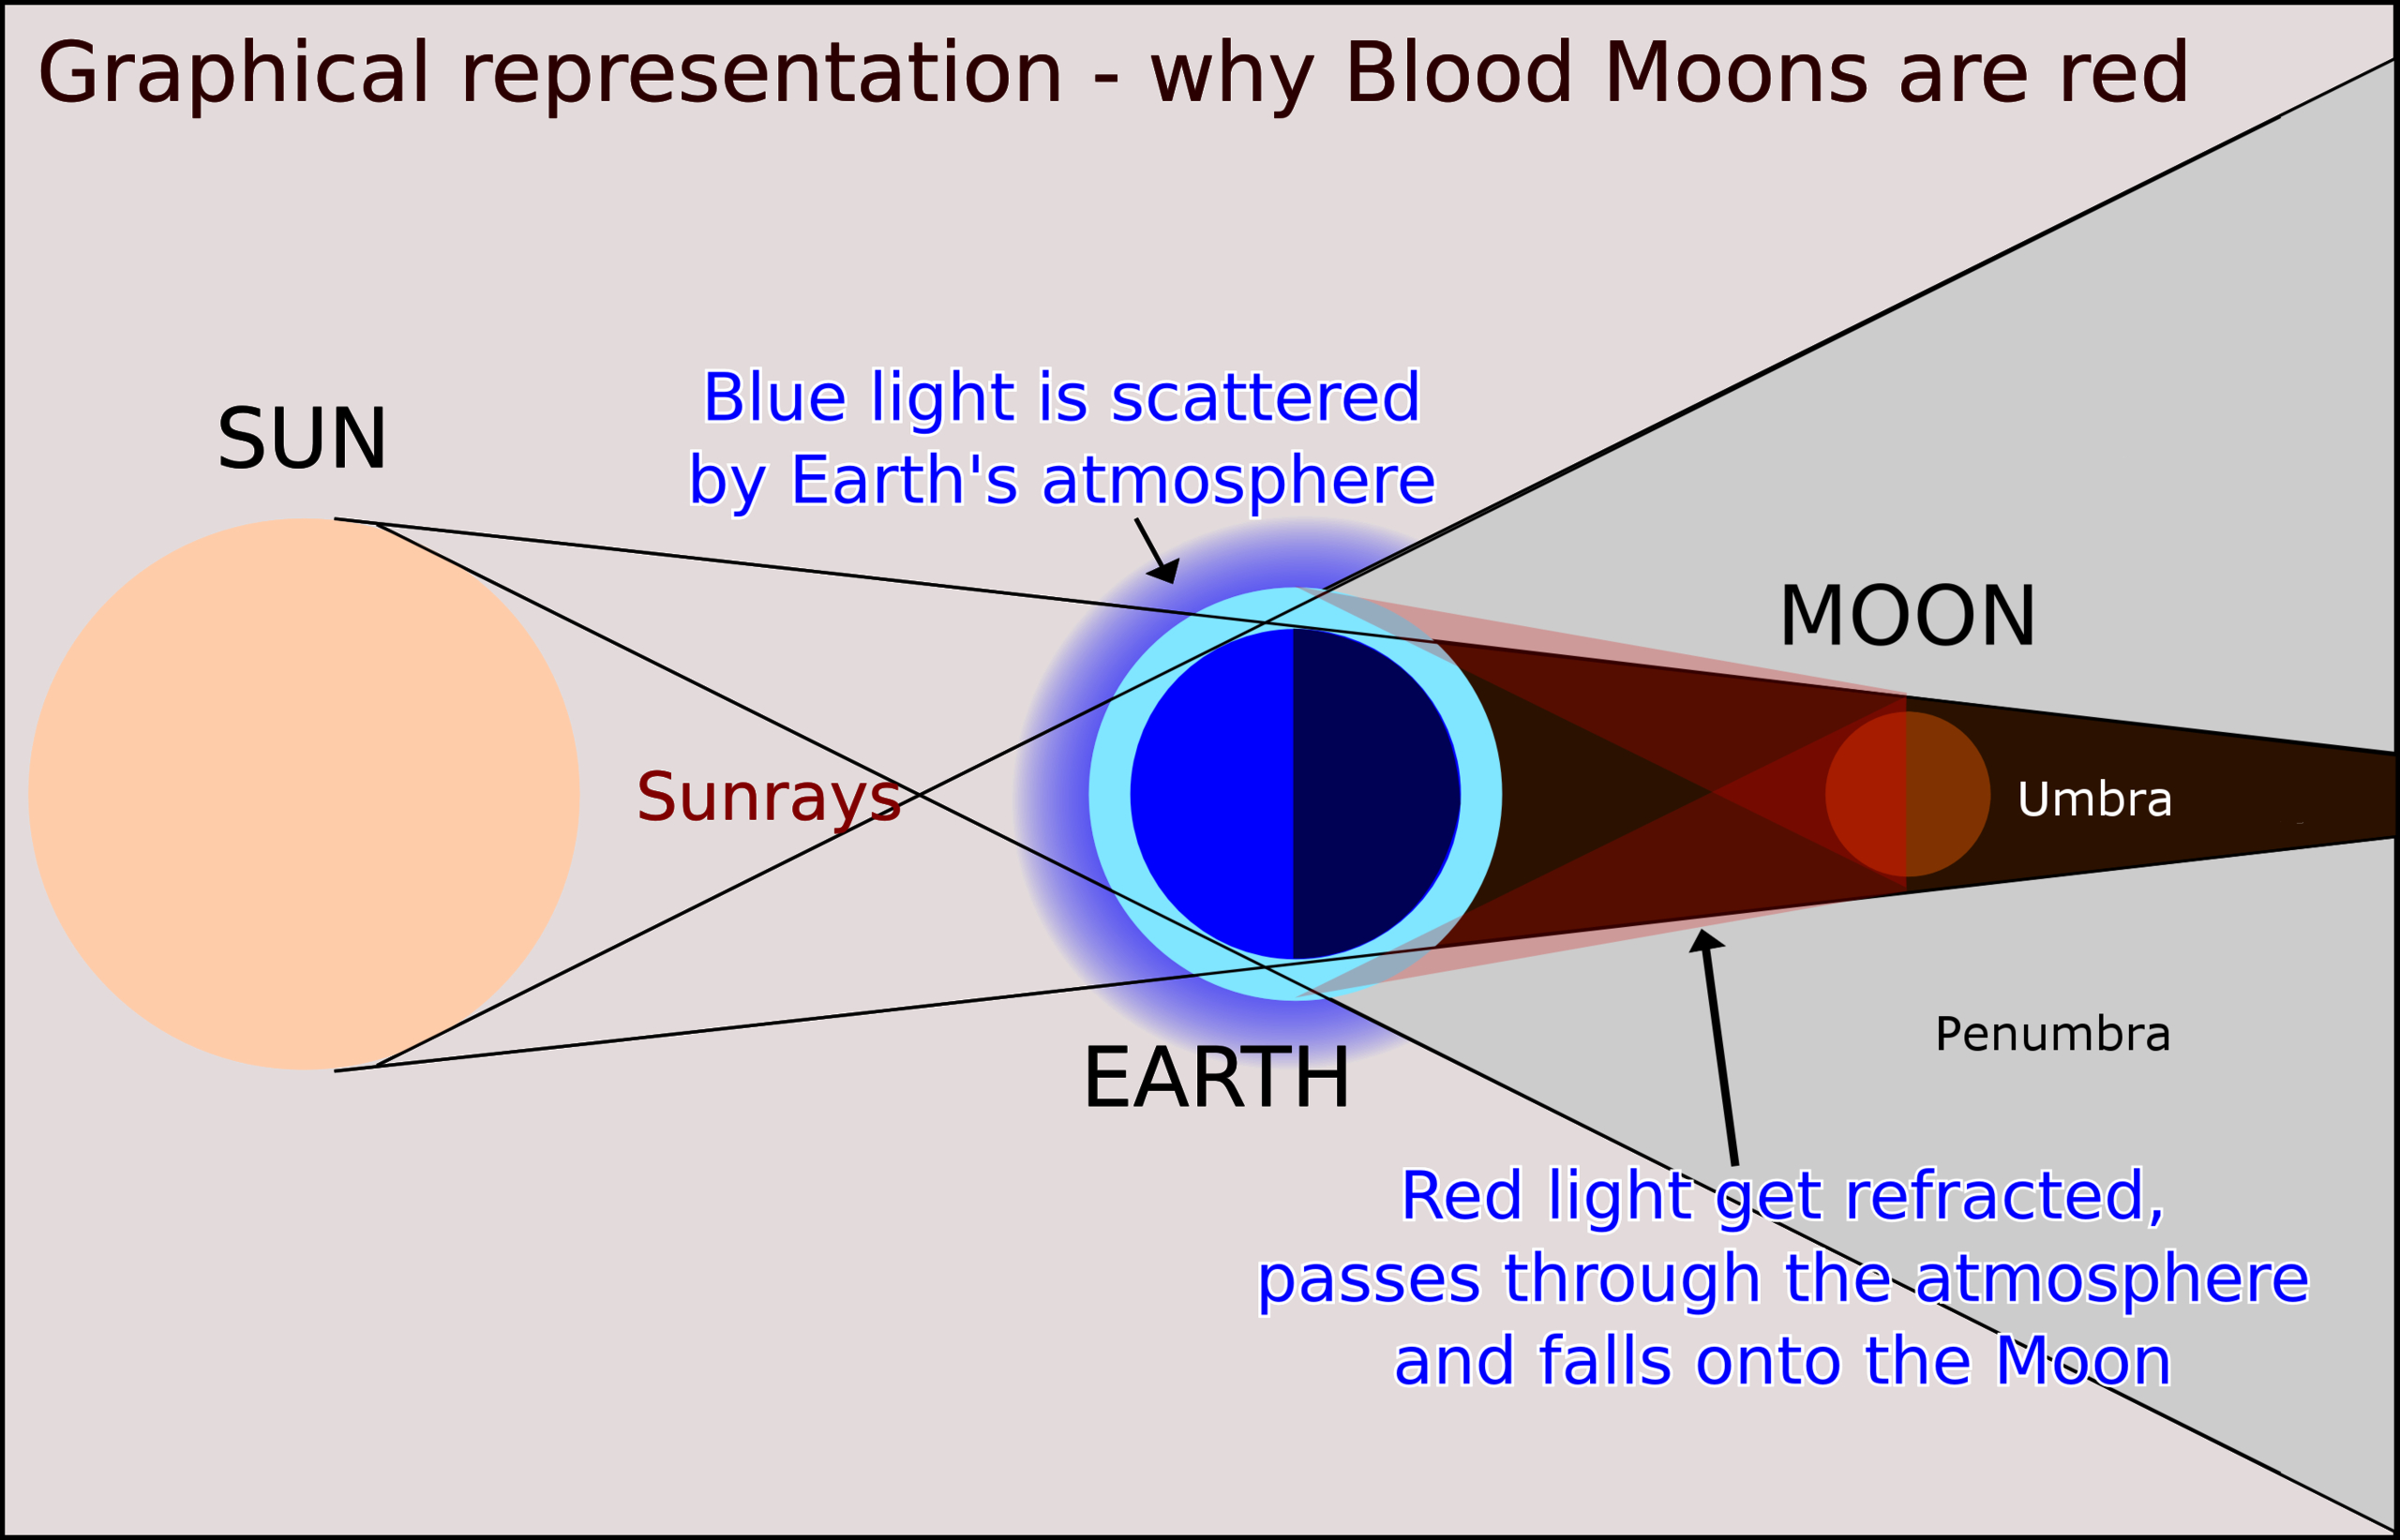 Lunar Eclipse Diagram Dont Miss The Spectacular Super Blood Moon Eclipse On January 20